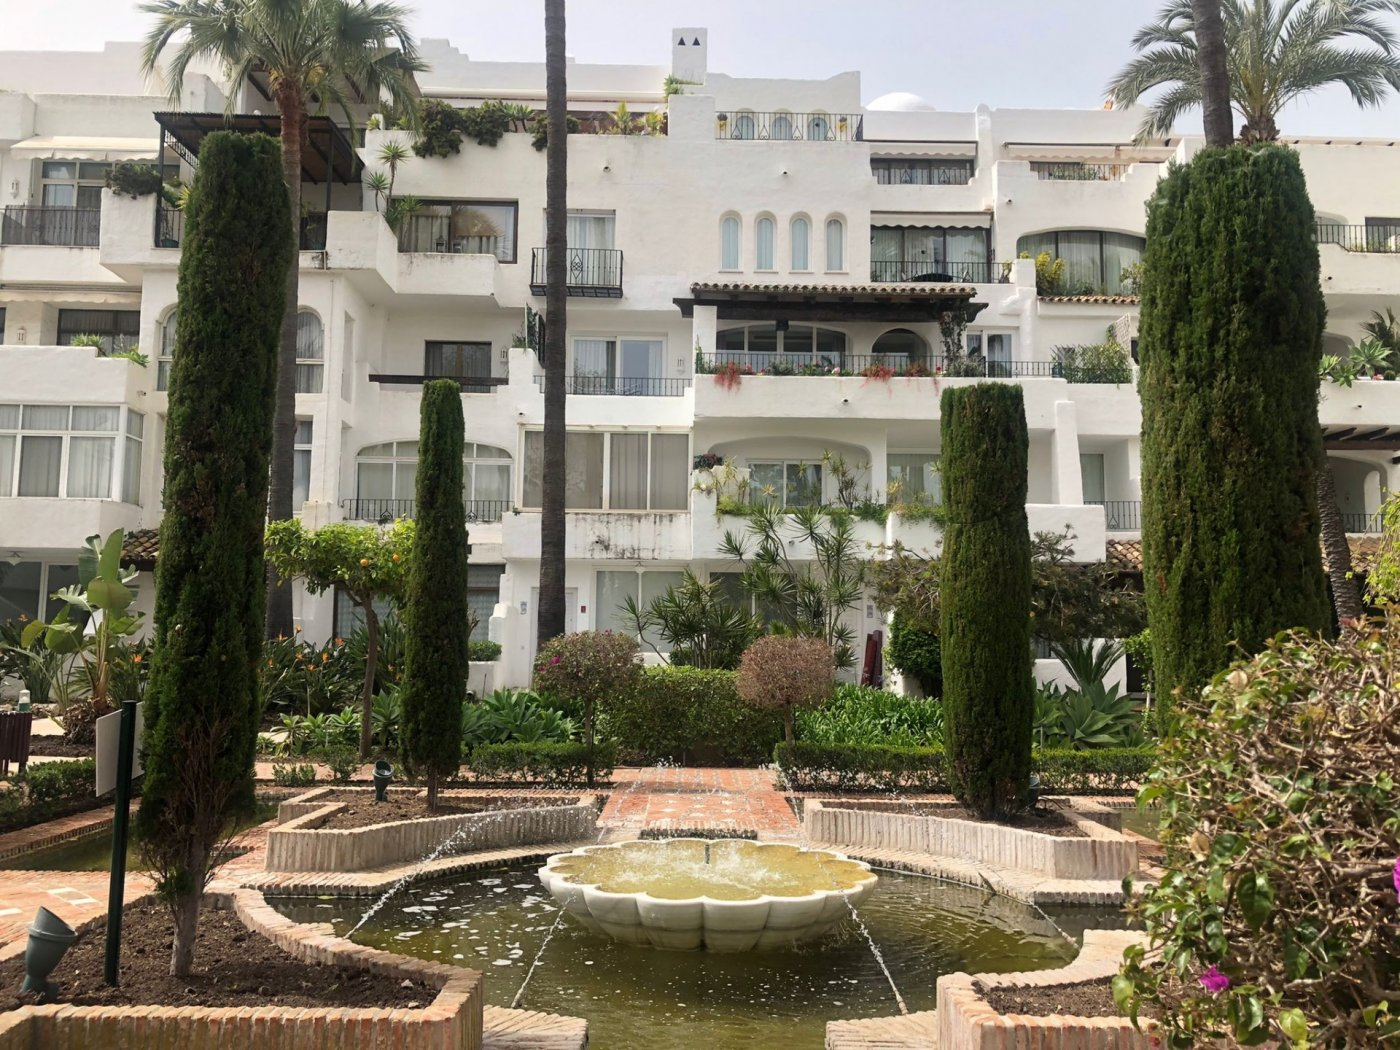 Penthouse Puerto banus to reform investros opptunity